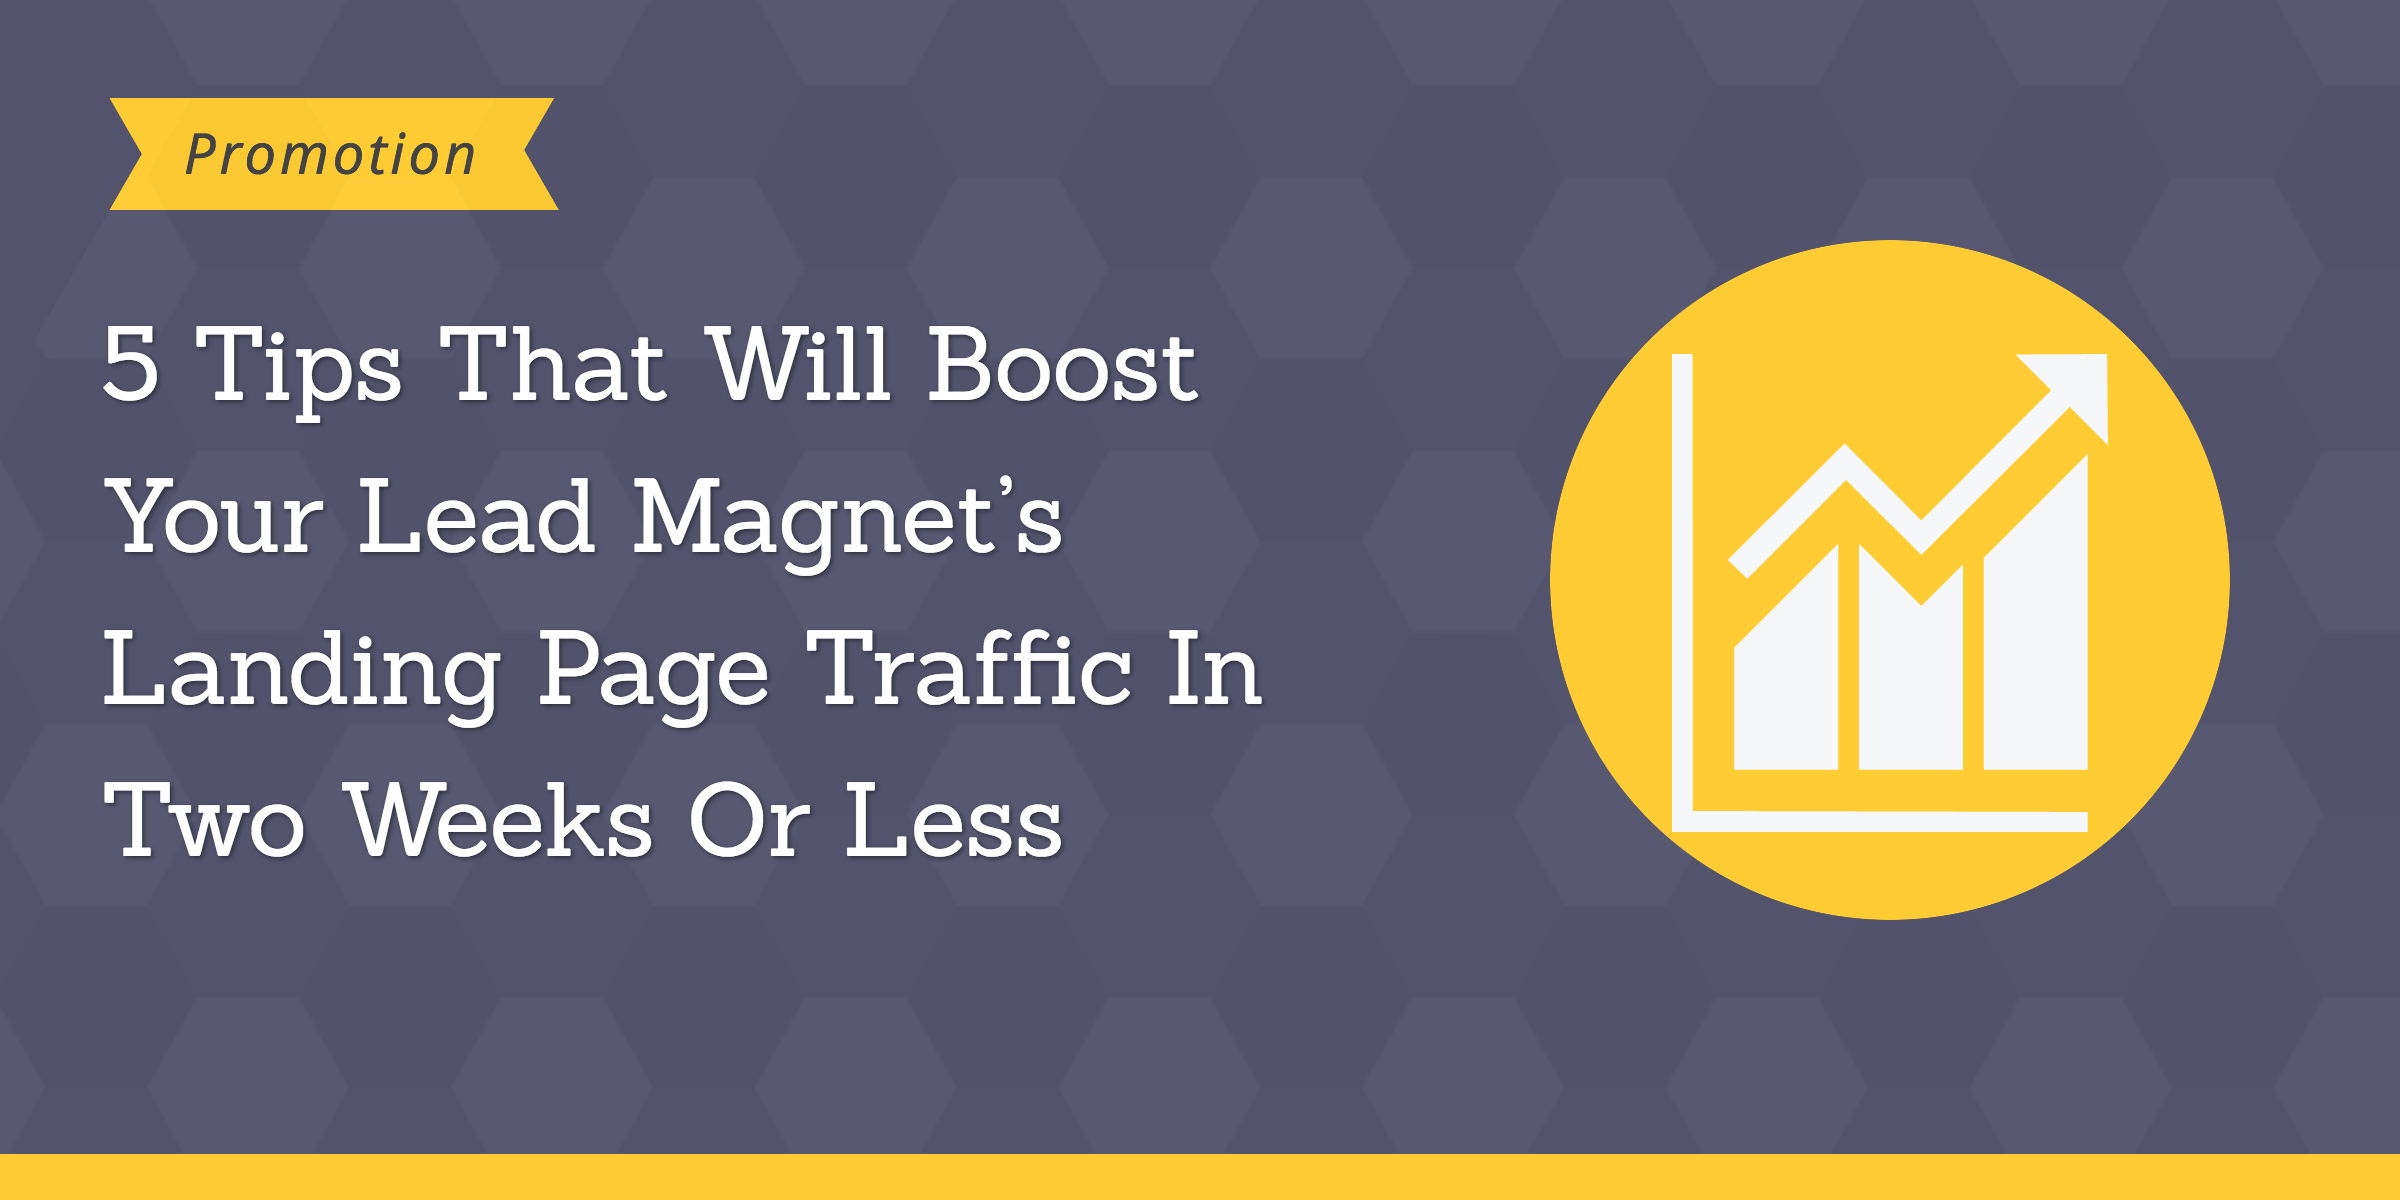 lead magnets landing page traffic